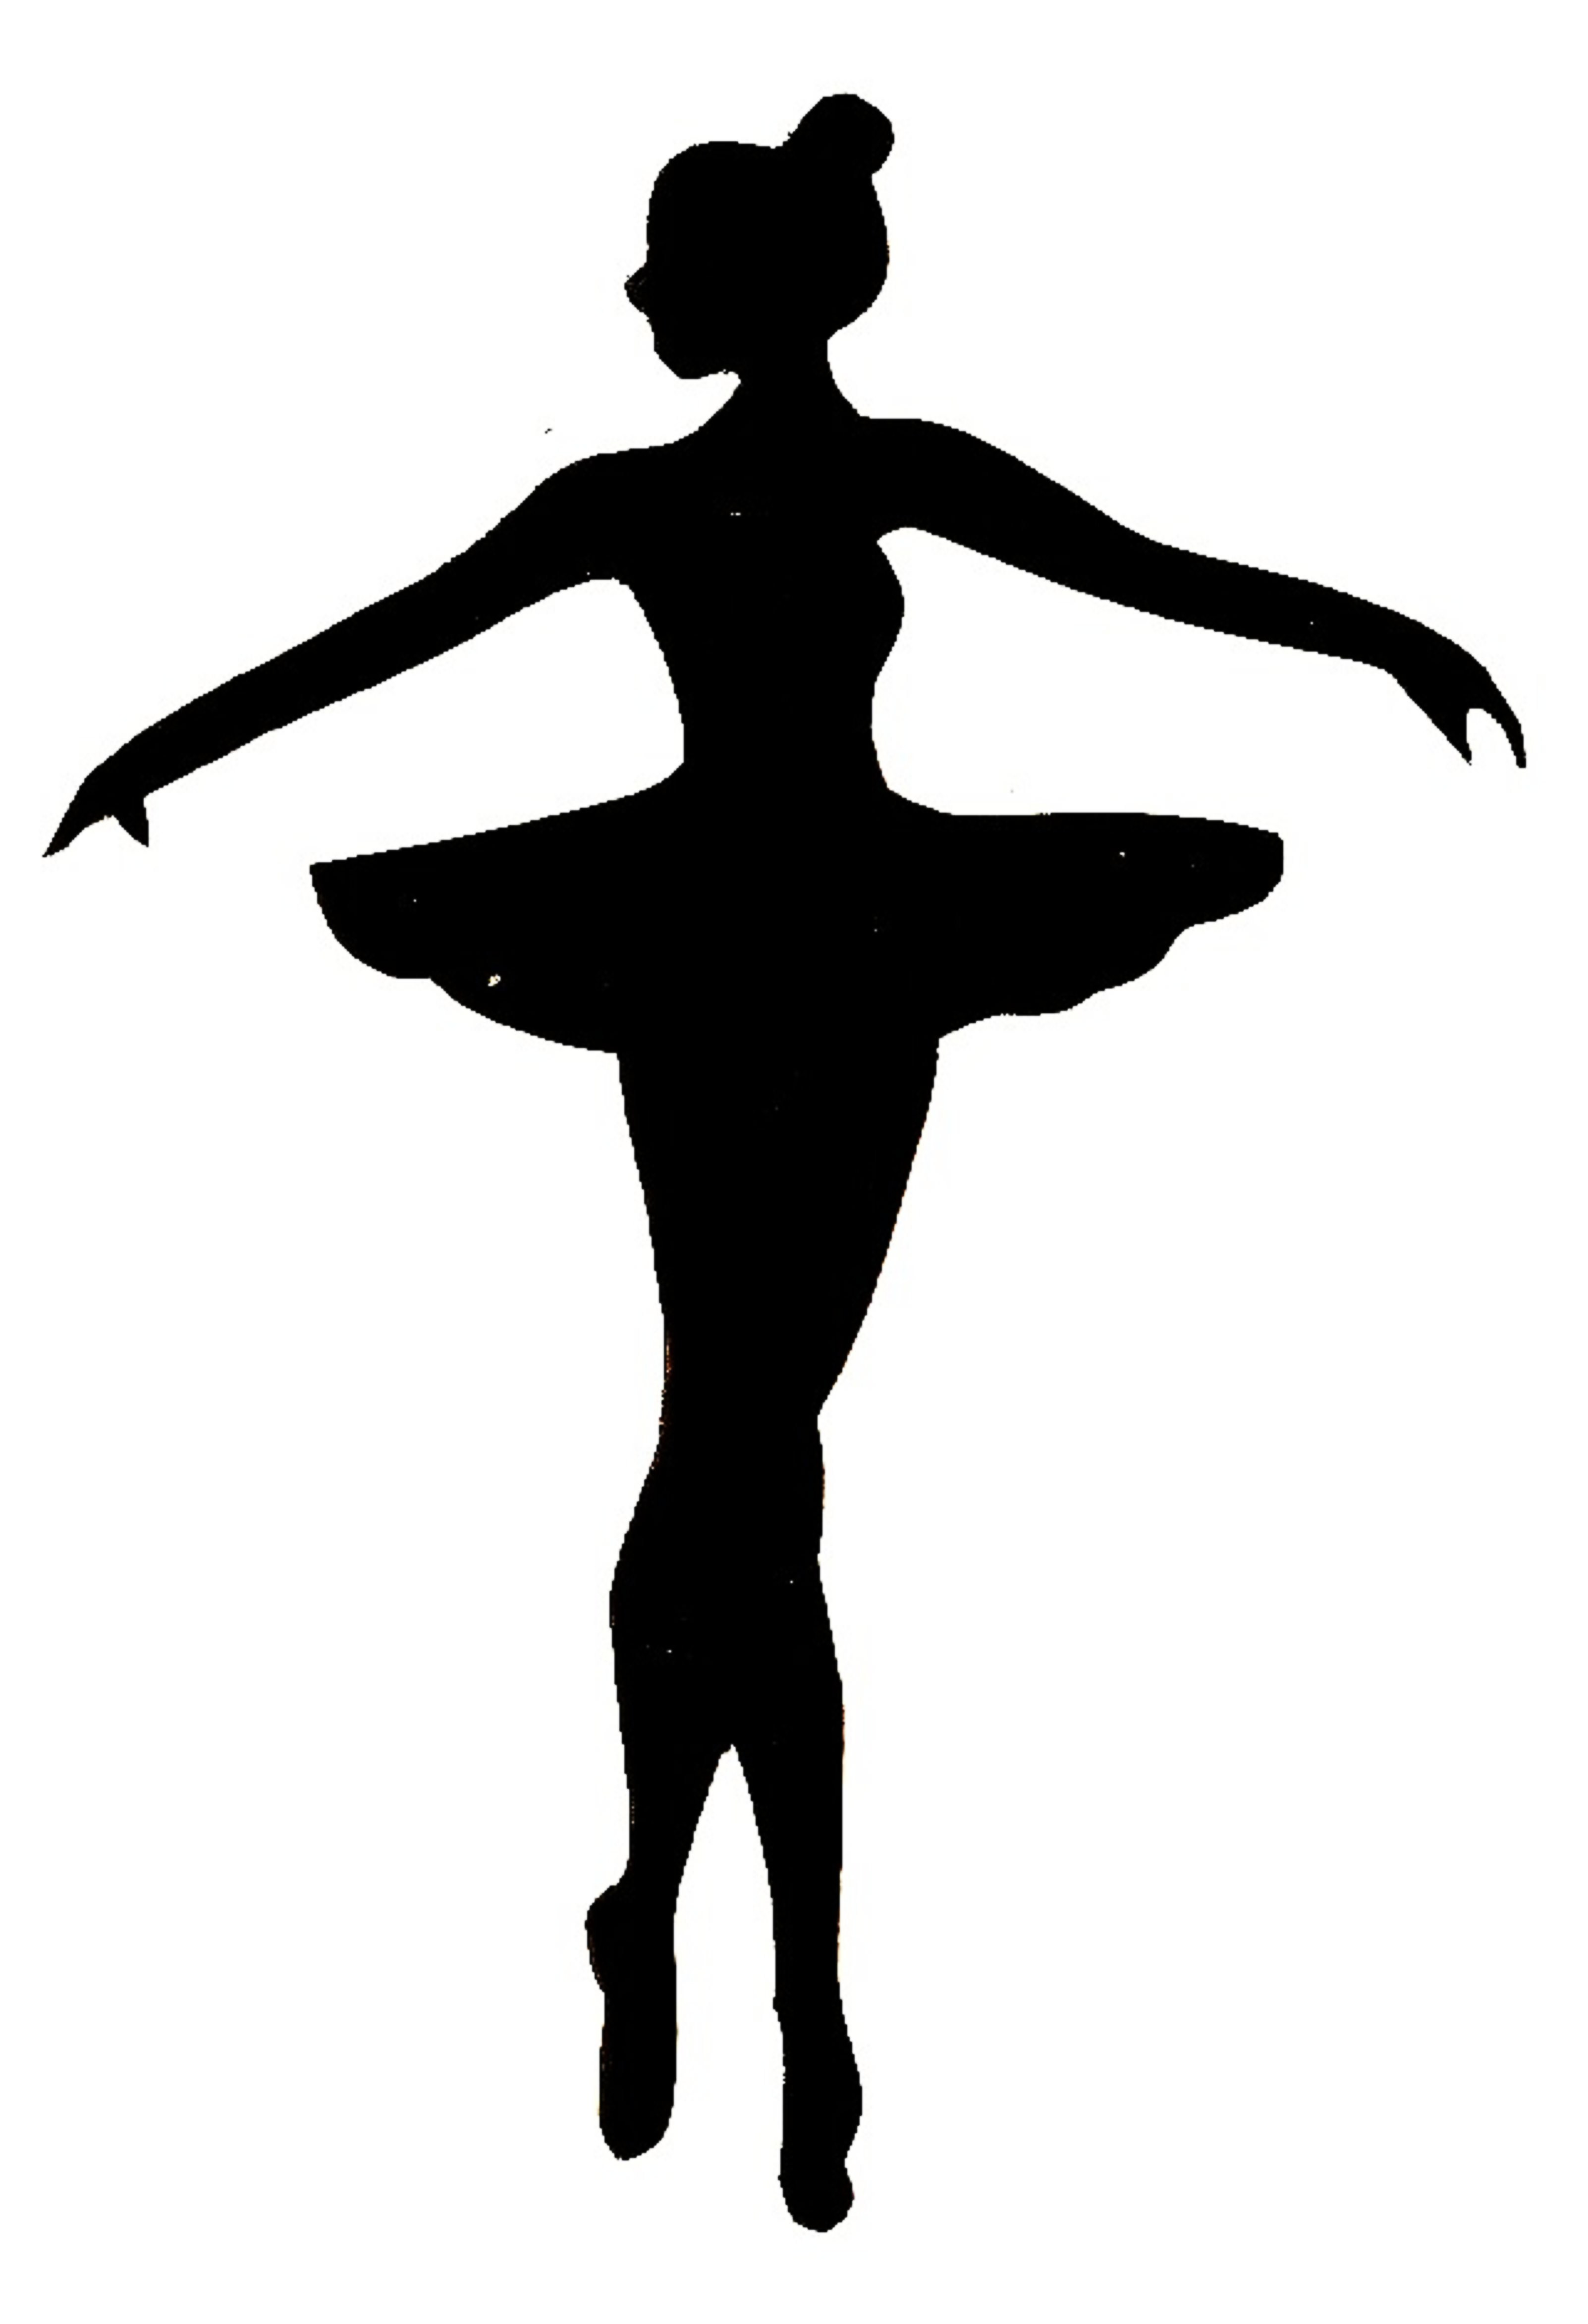 10 Ballerina Png Free Cliparts That You Can Download To You Computer